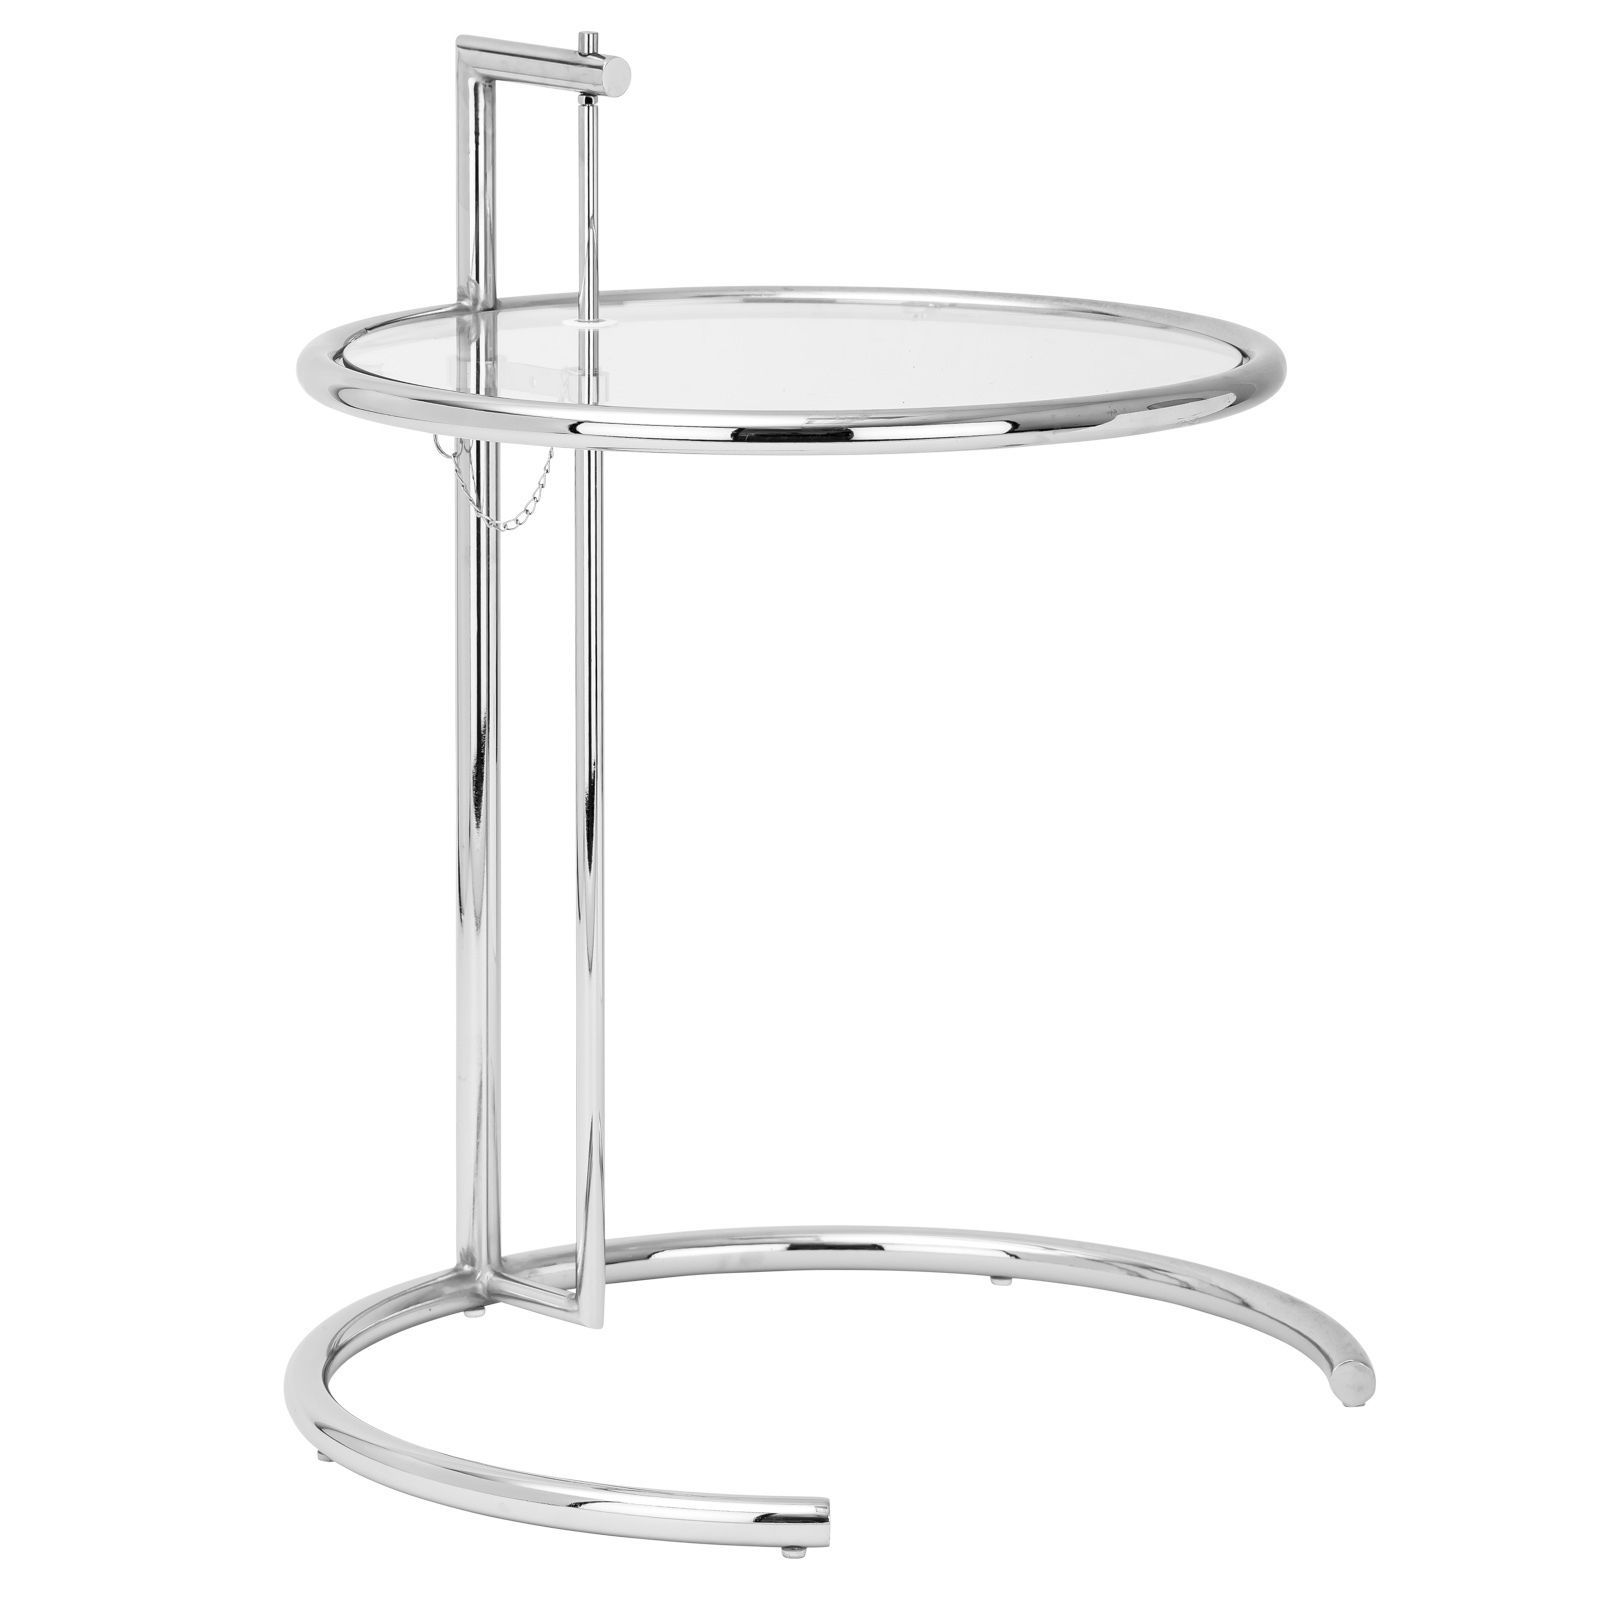 when comes mid century modern accent tables the edgemod table eileen gray side ultimate statement piece features adjustable height velvet furniture target dinosaur bedding patio